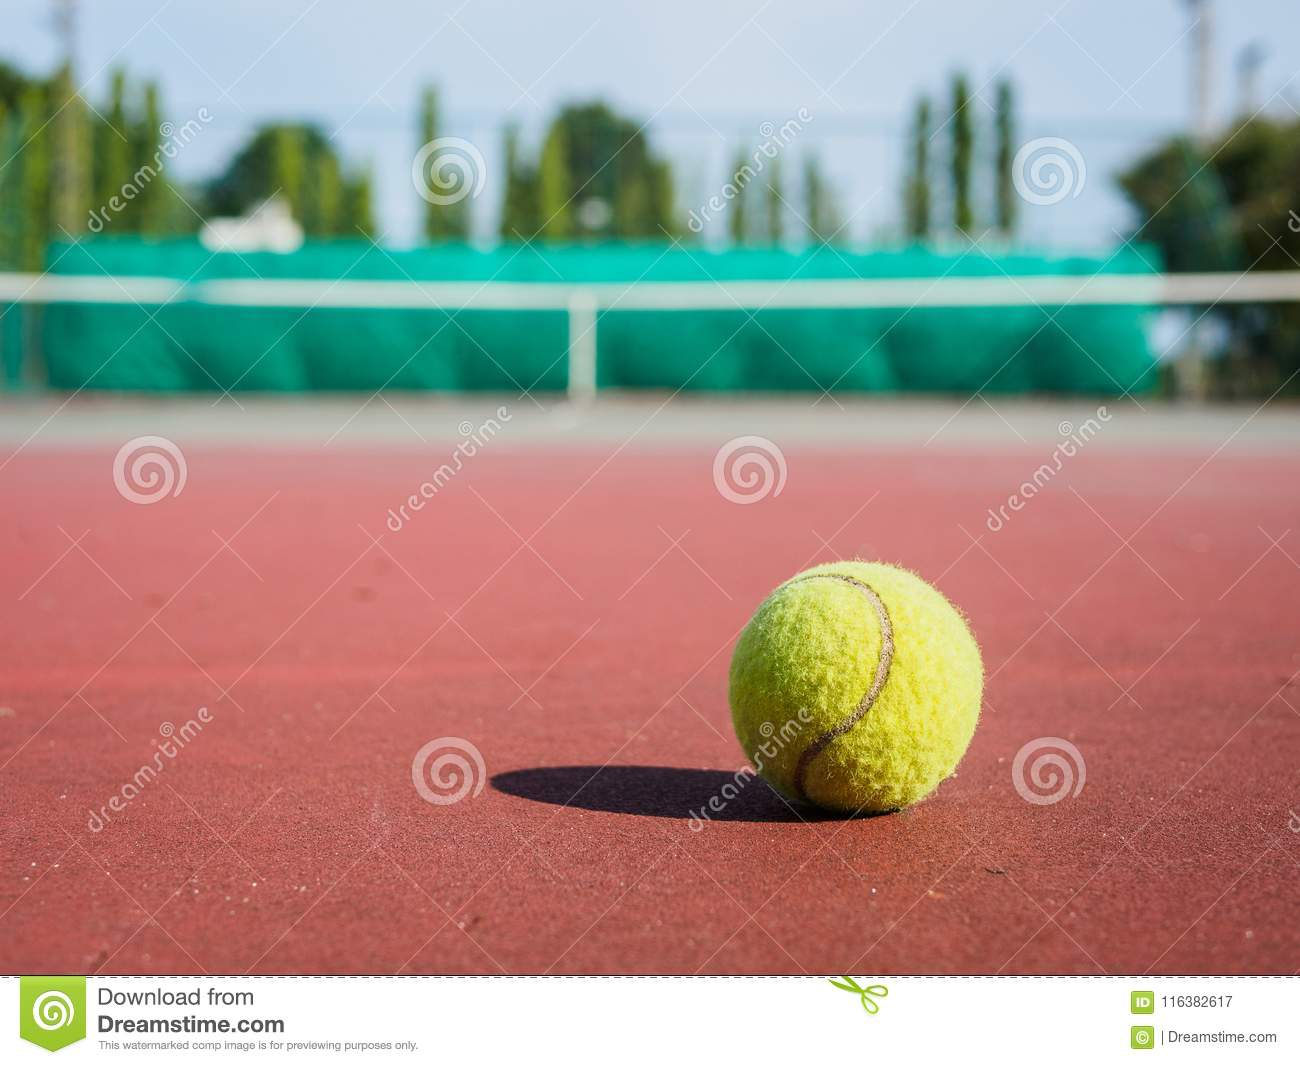 Close up of tennis ball on the court. Sport active concept.